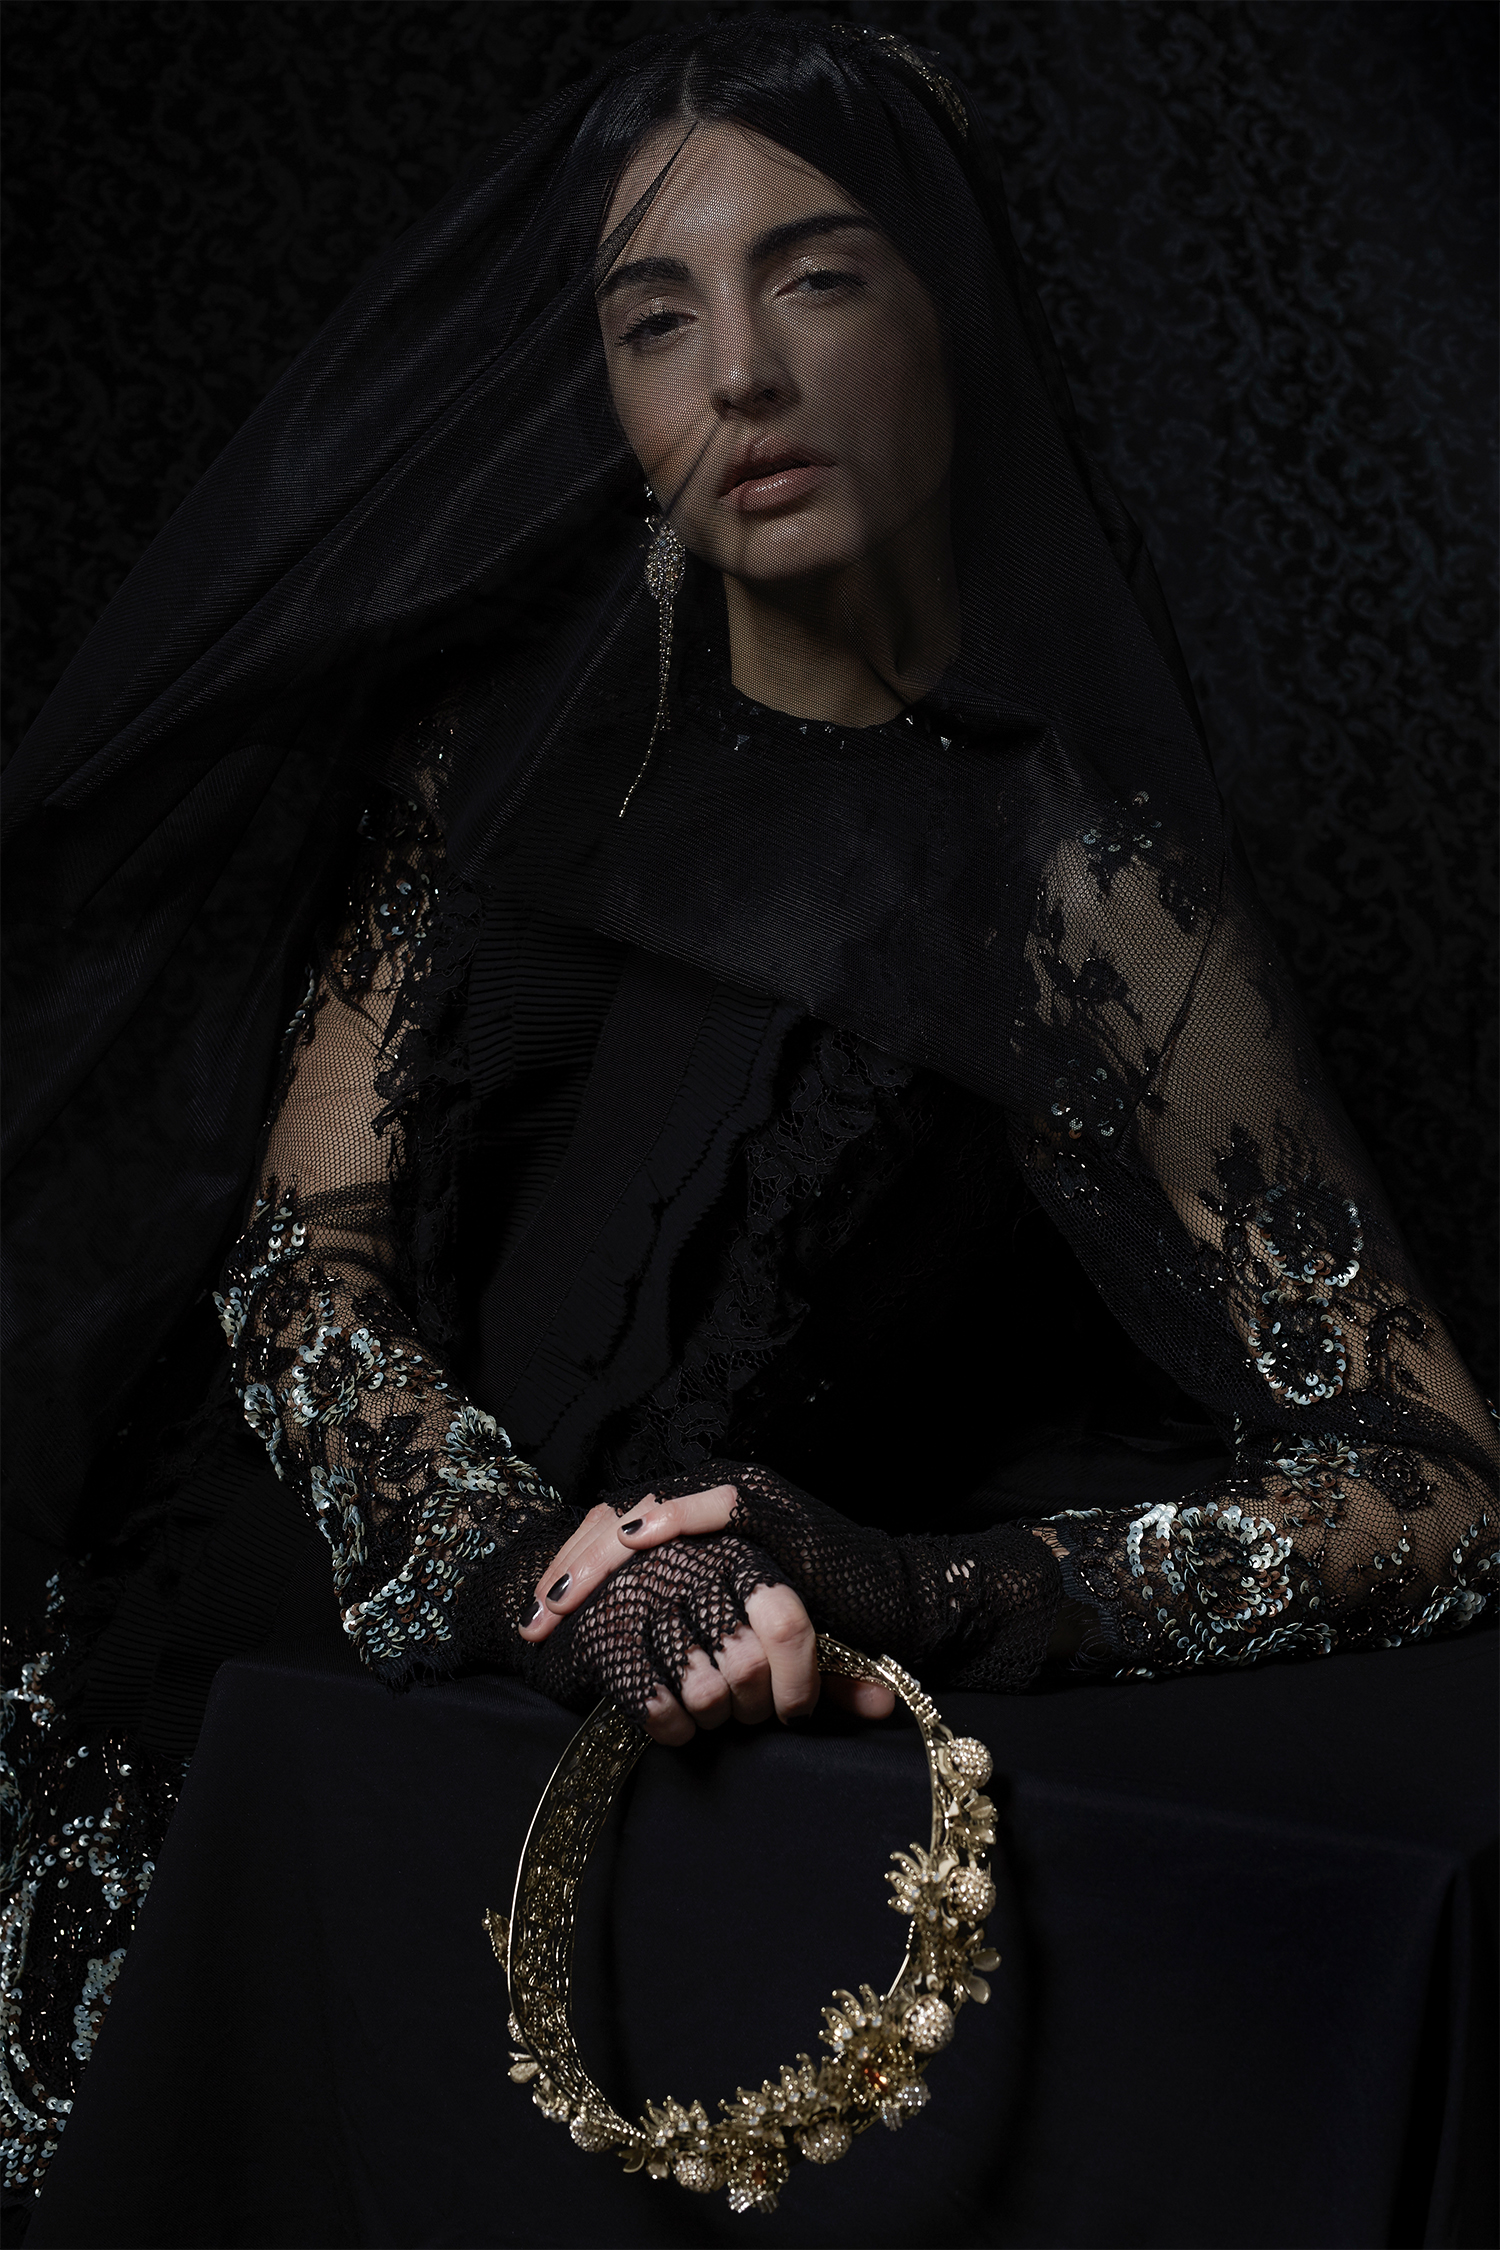 Black lace top with frills, Si-Jay; black veil dress with embroidery detail, Mori Castello; earrings and crown, Vittorio Ceccoli Jewelry